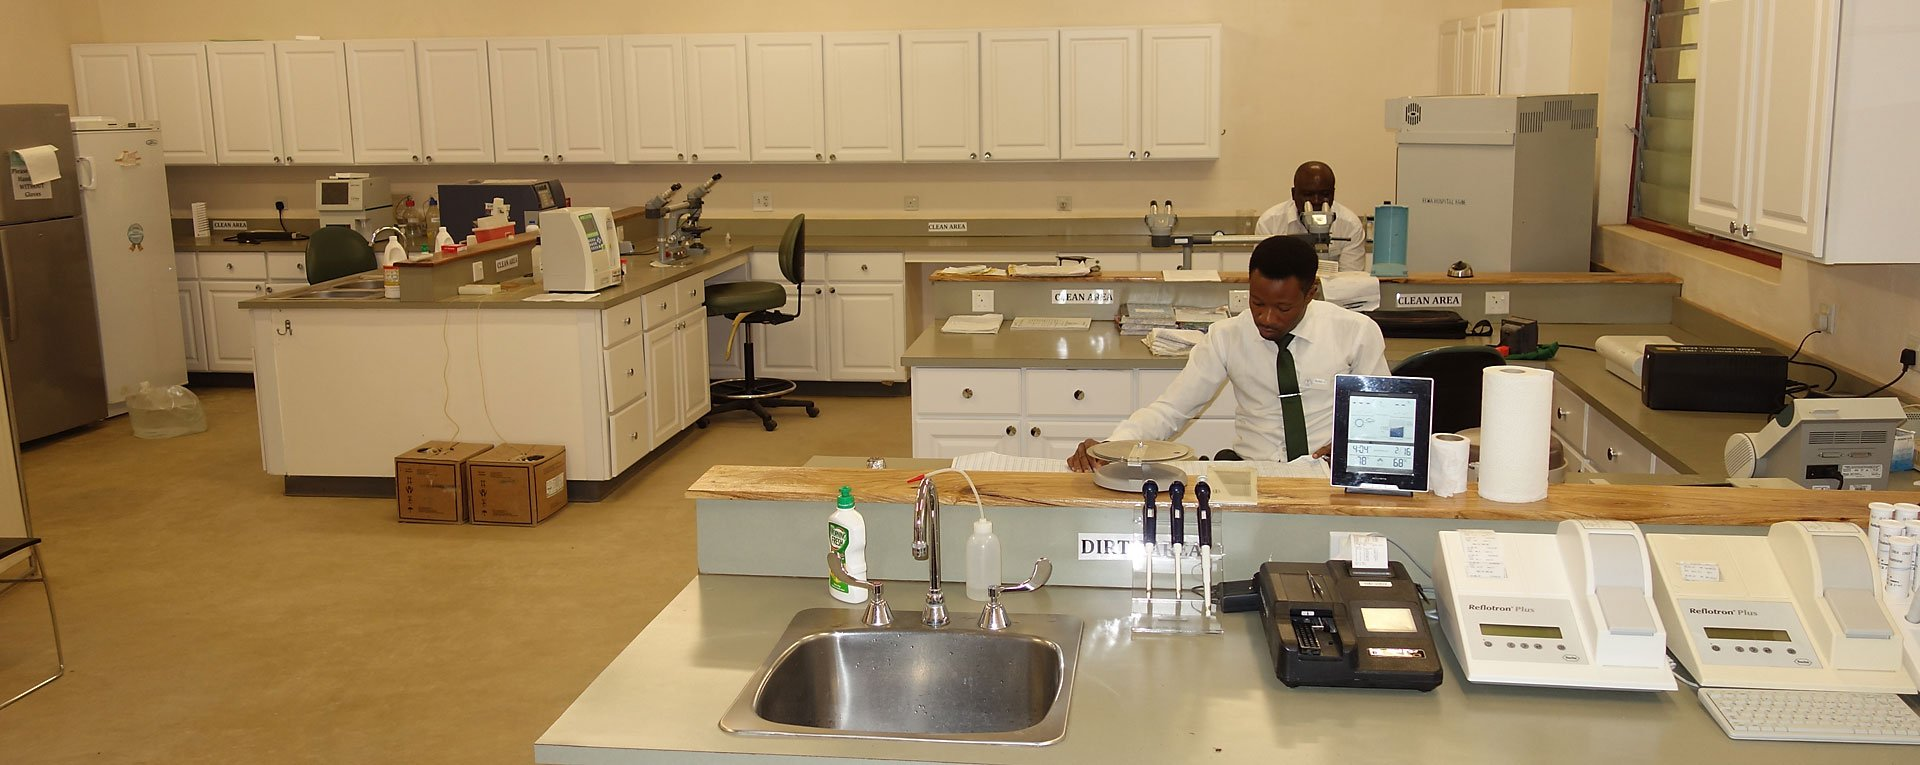 New Egbe Hospital Laboratory